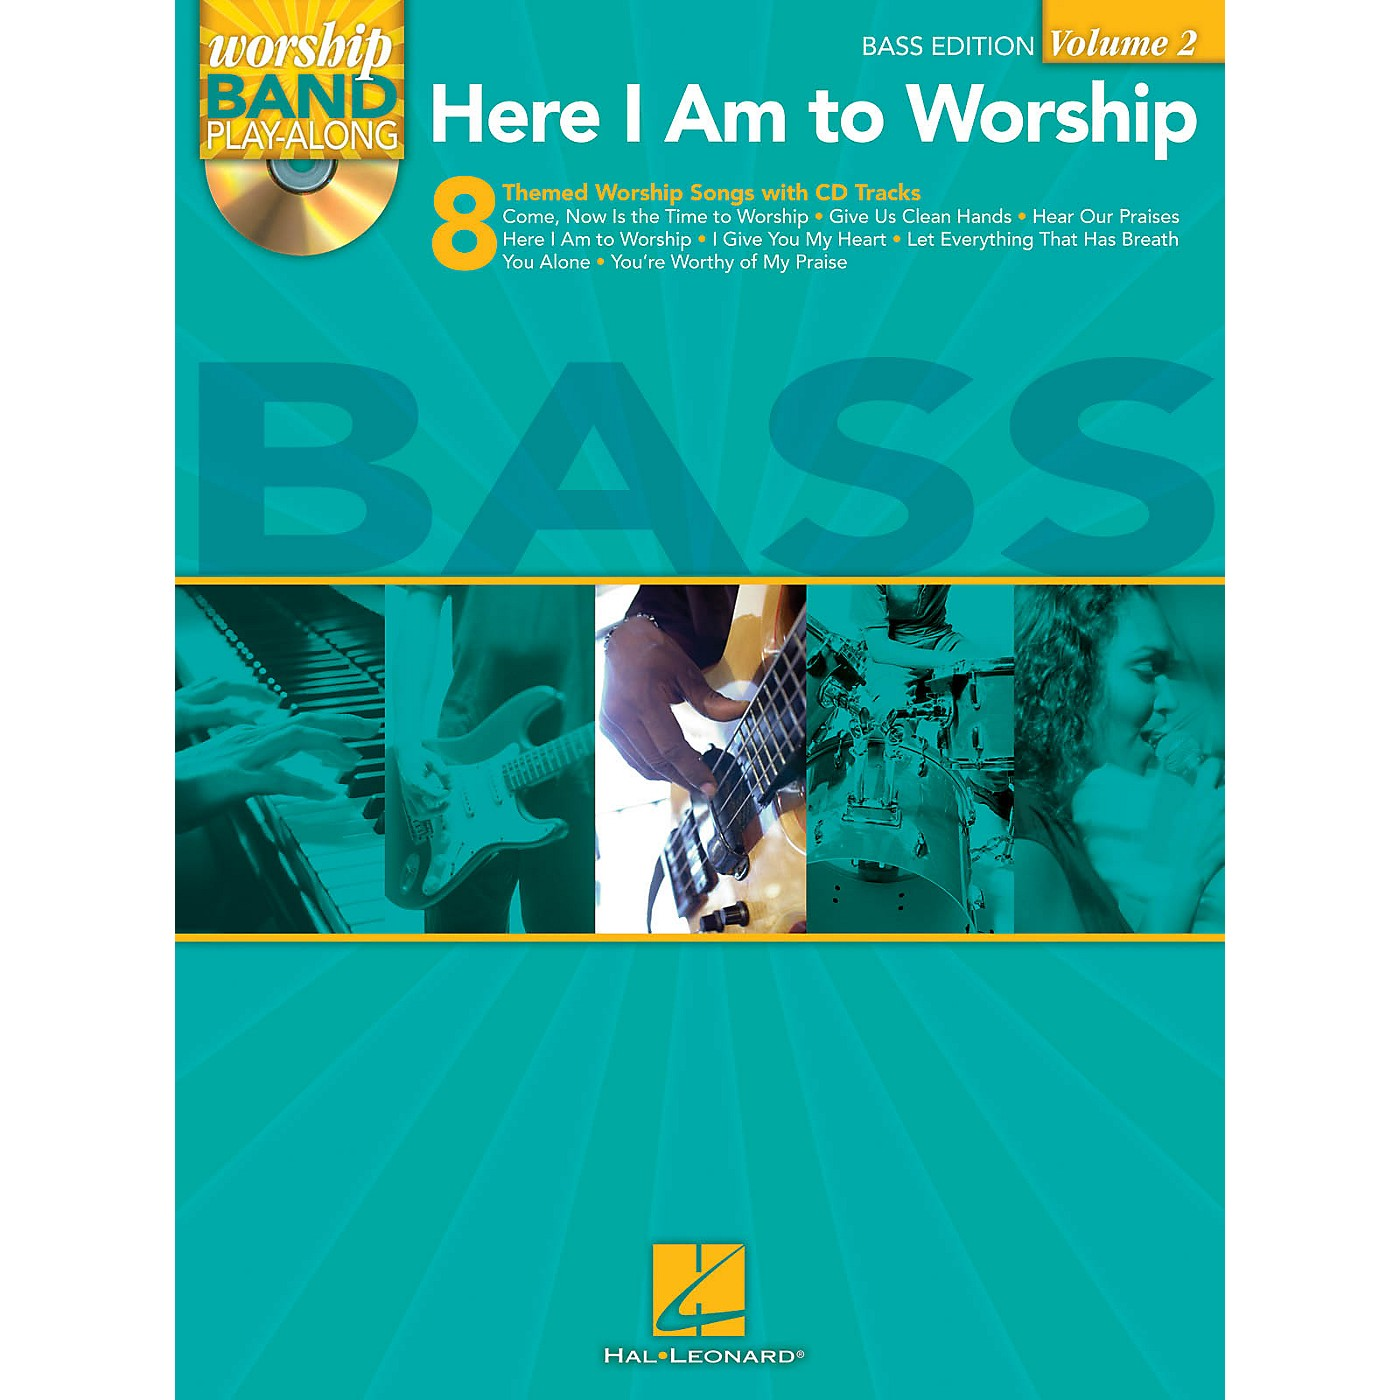 Hal Leonard Here I Am to Worship - Bass Edition Worship Band Play-Along Series Softcover with CD thumbnail